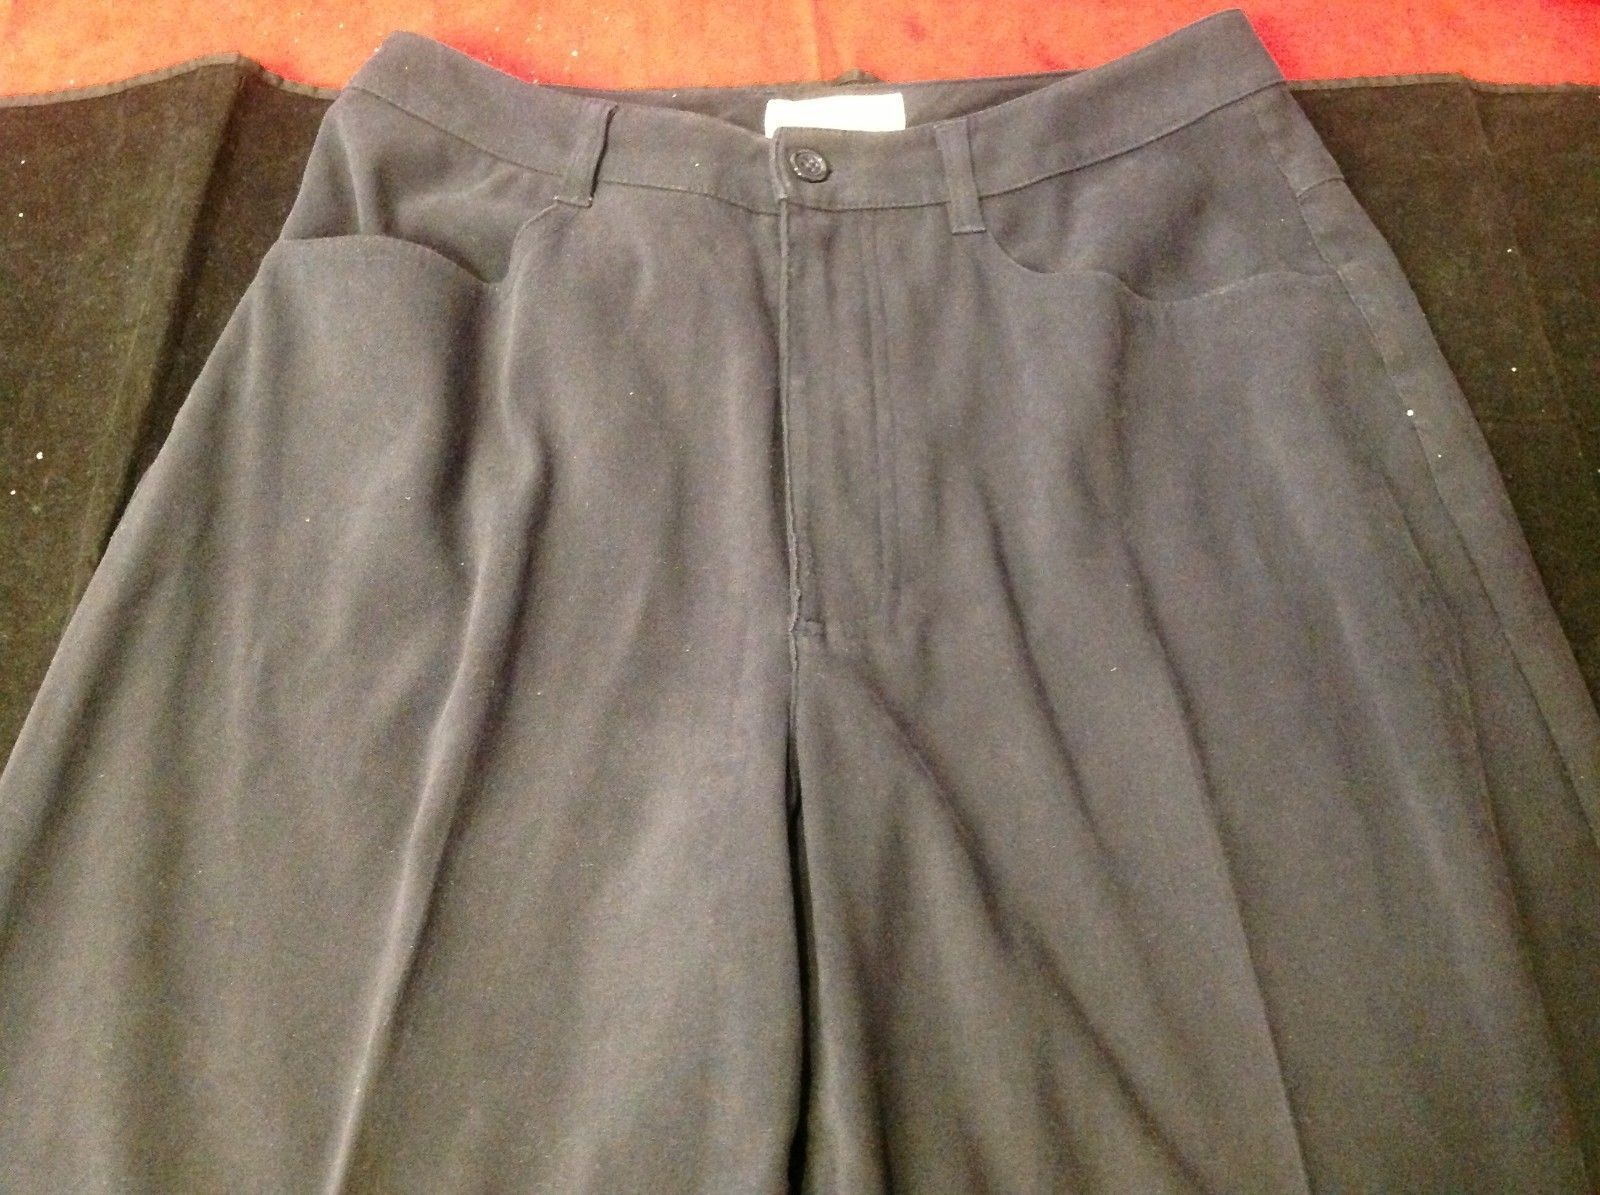 Talbots blue dress pants for woman size 6